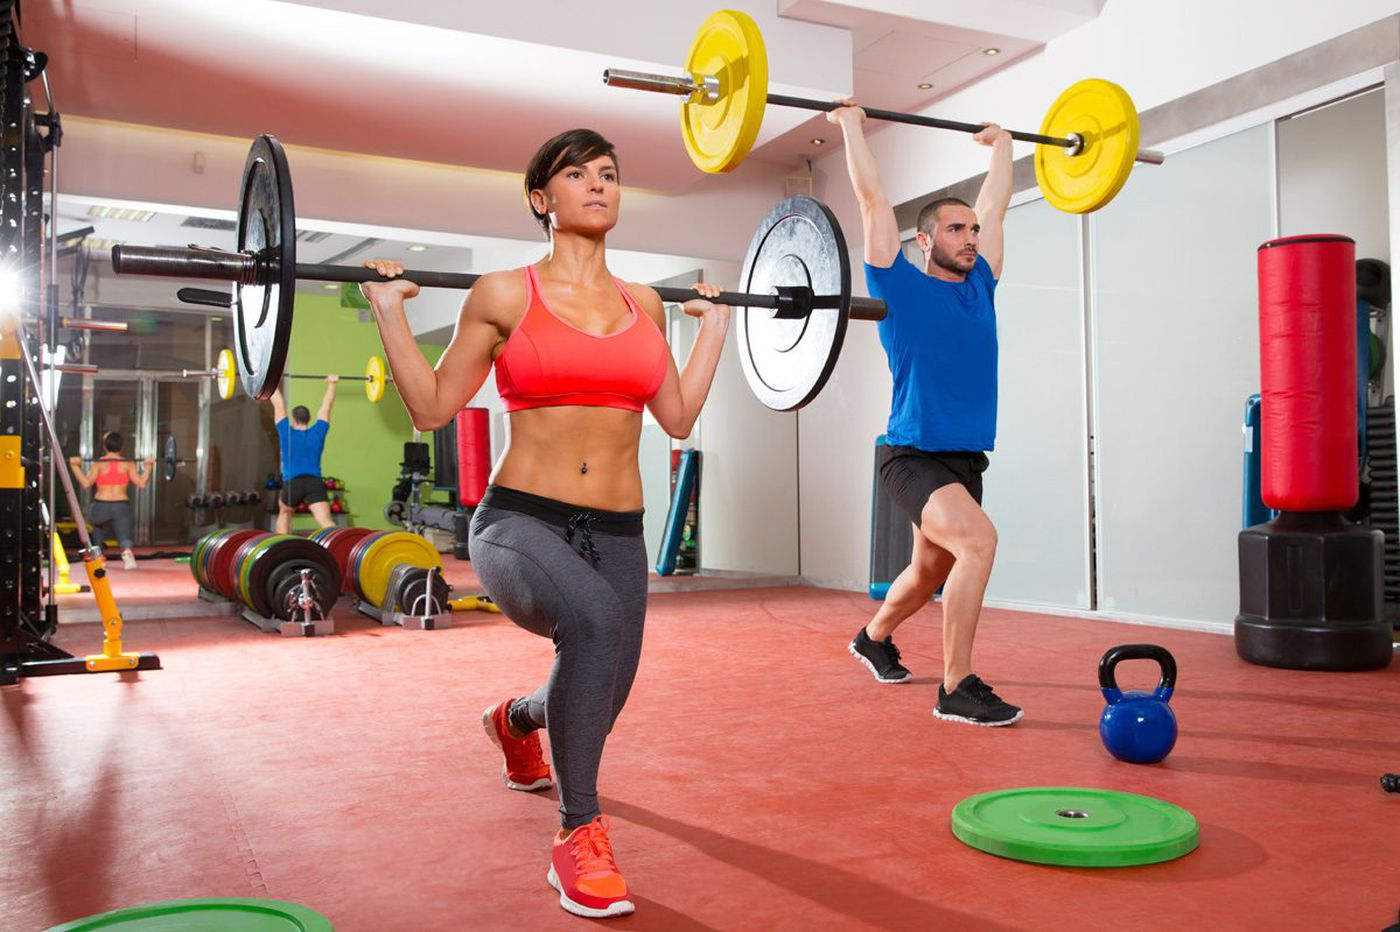 How to make your workouts shorter, more efficient